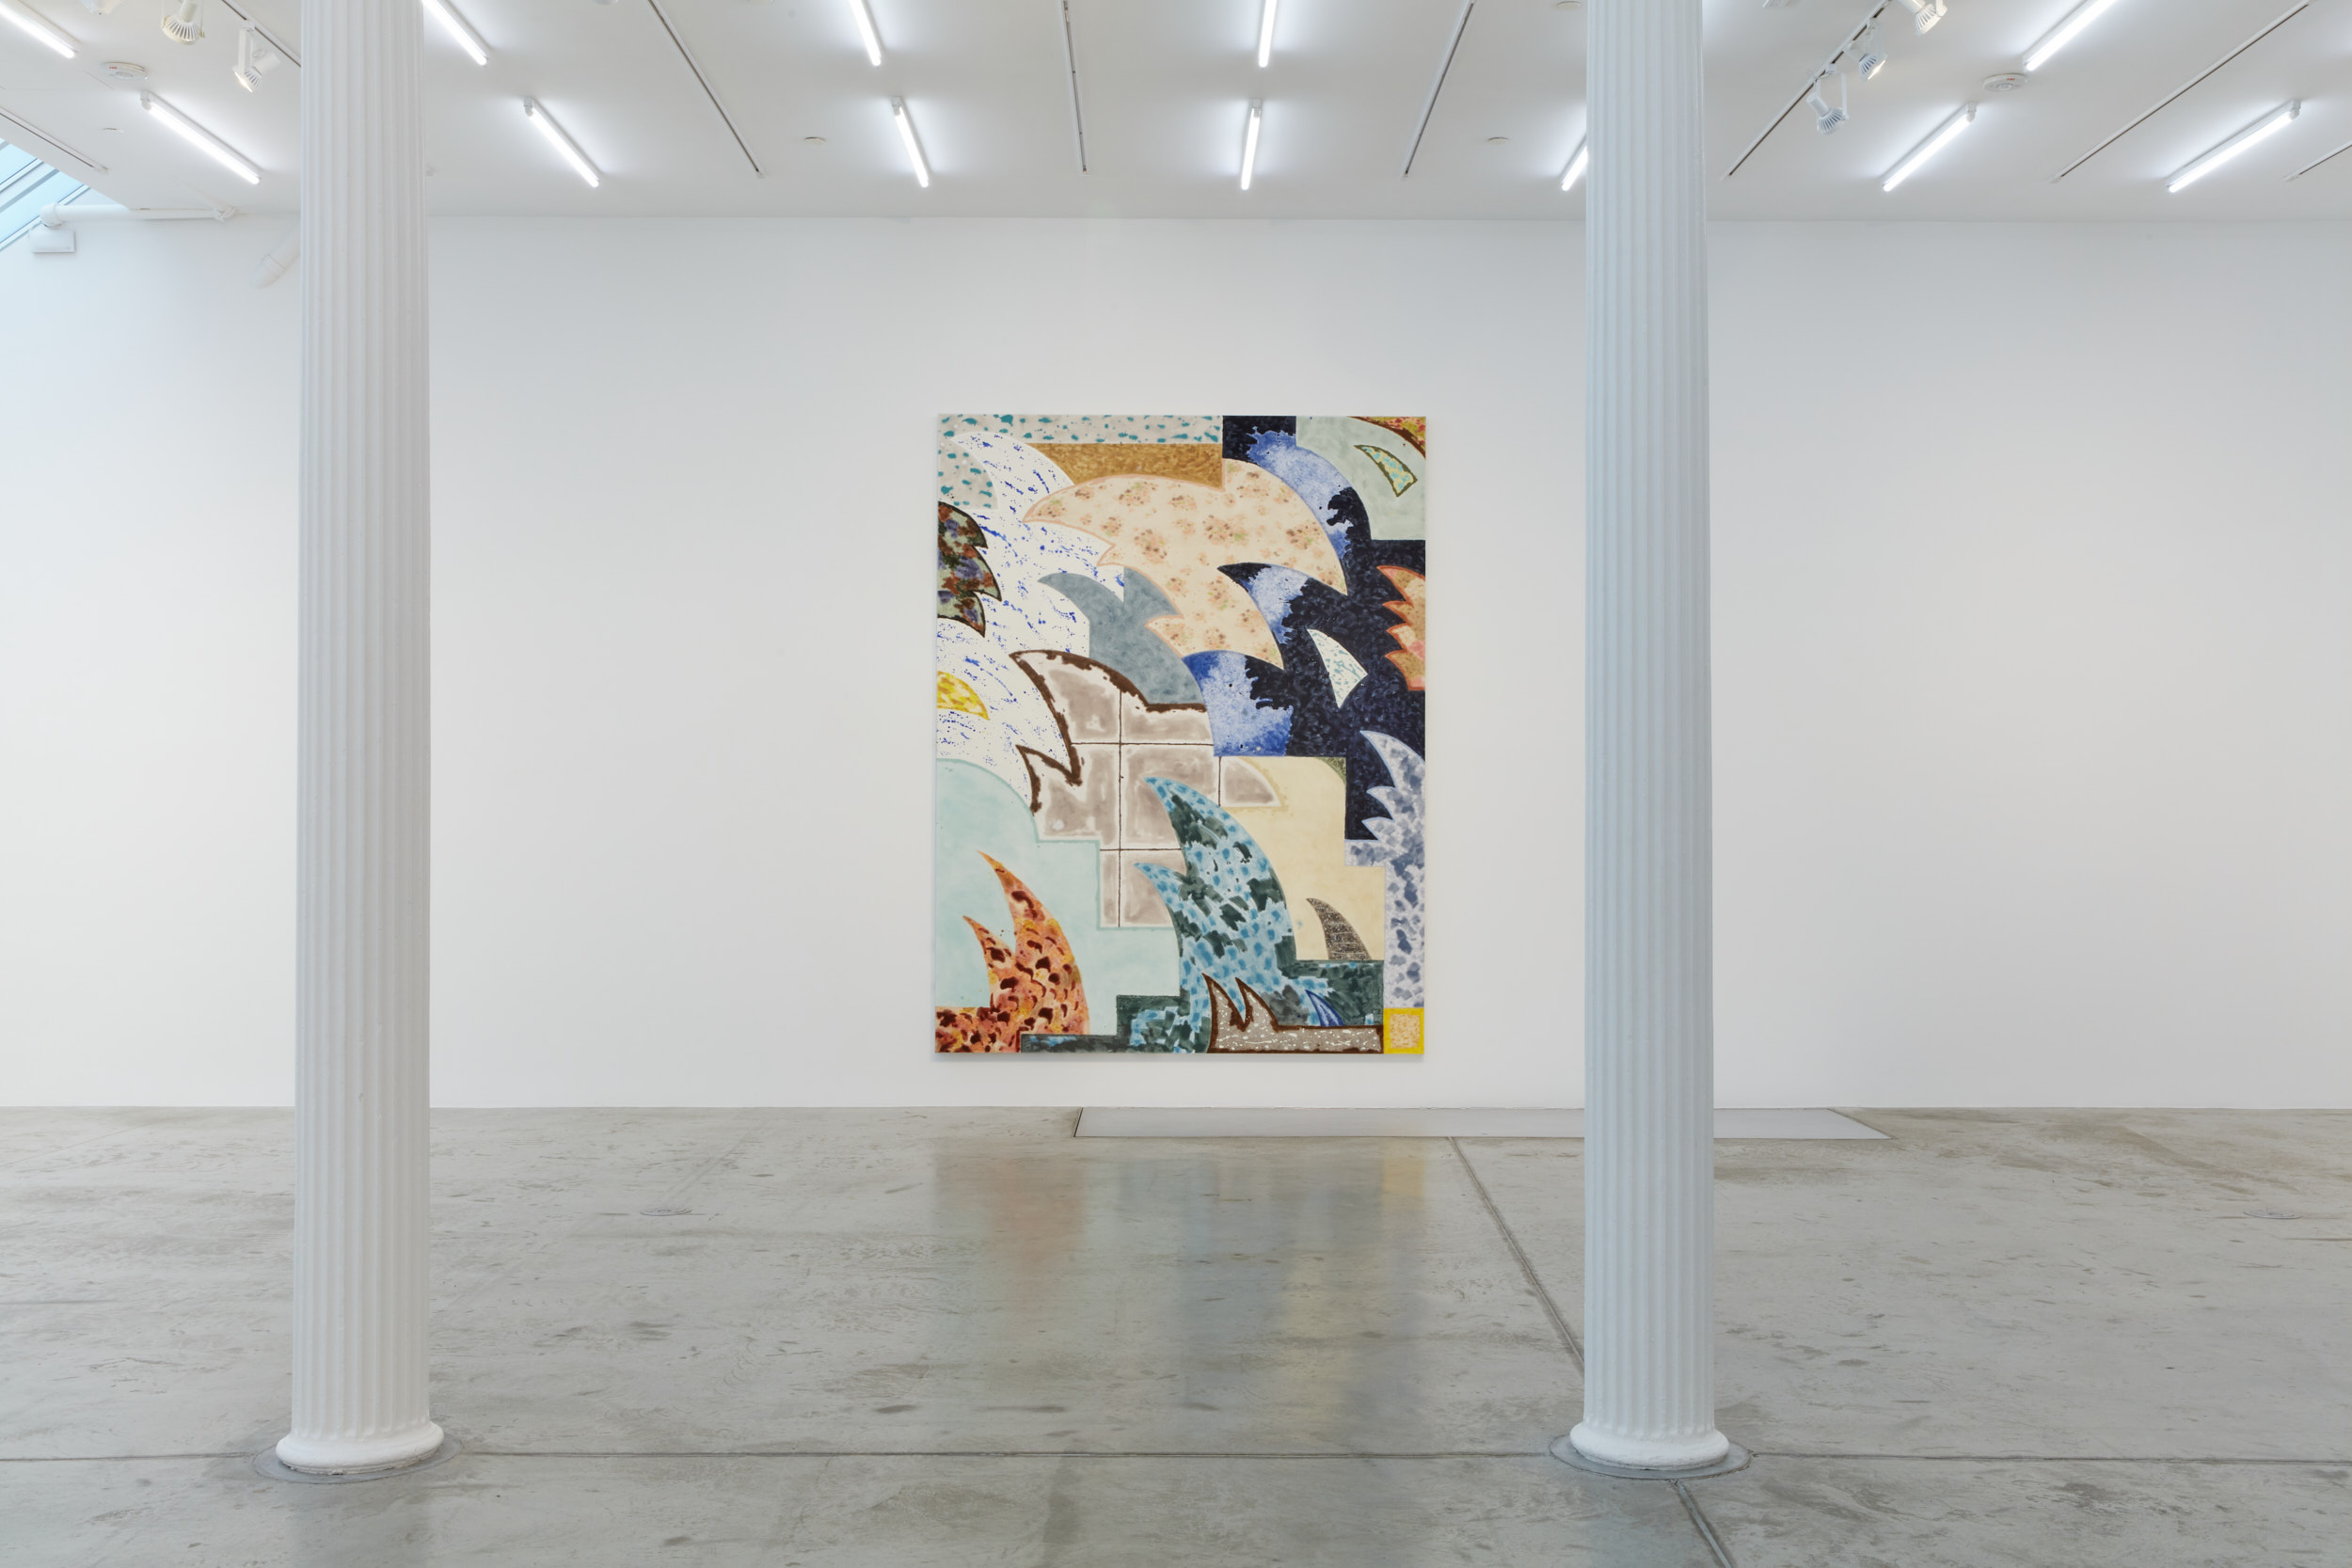 Rebecca Morris, 2020, installation view, Bortolami, New York. Images courtesy the artist and Bortolami, New York. Photography by Kristian Laudrup.